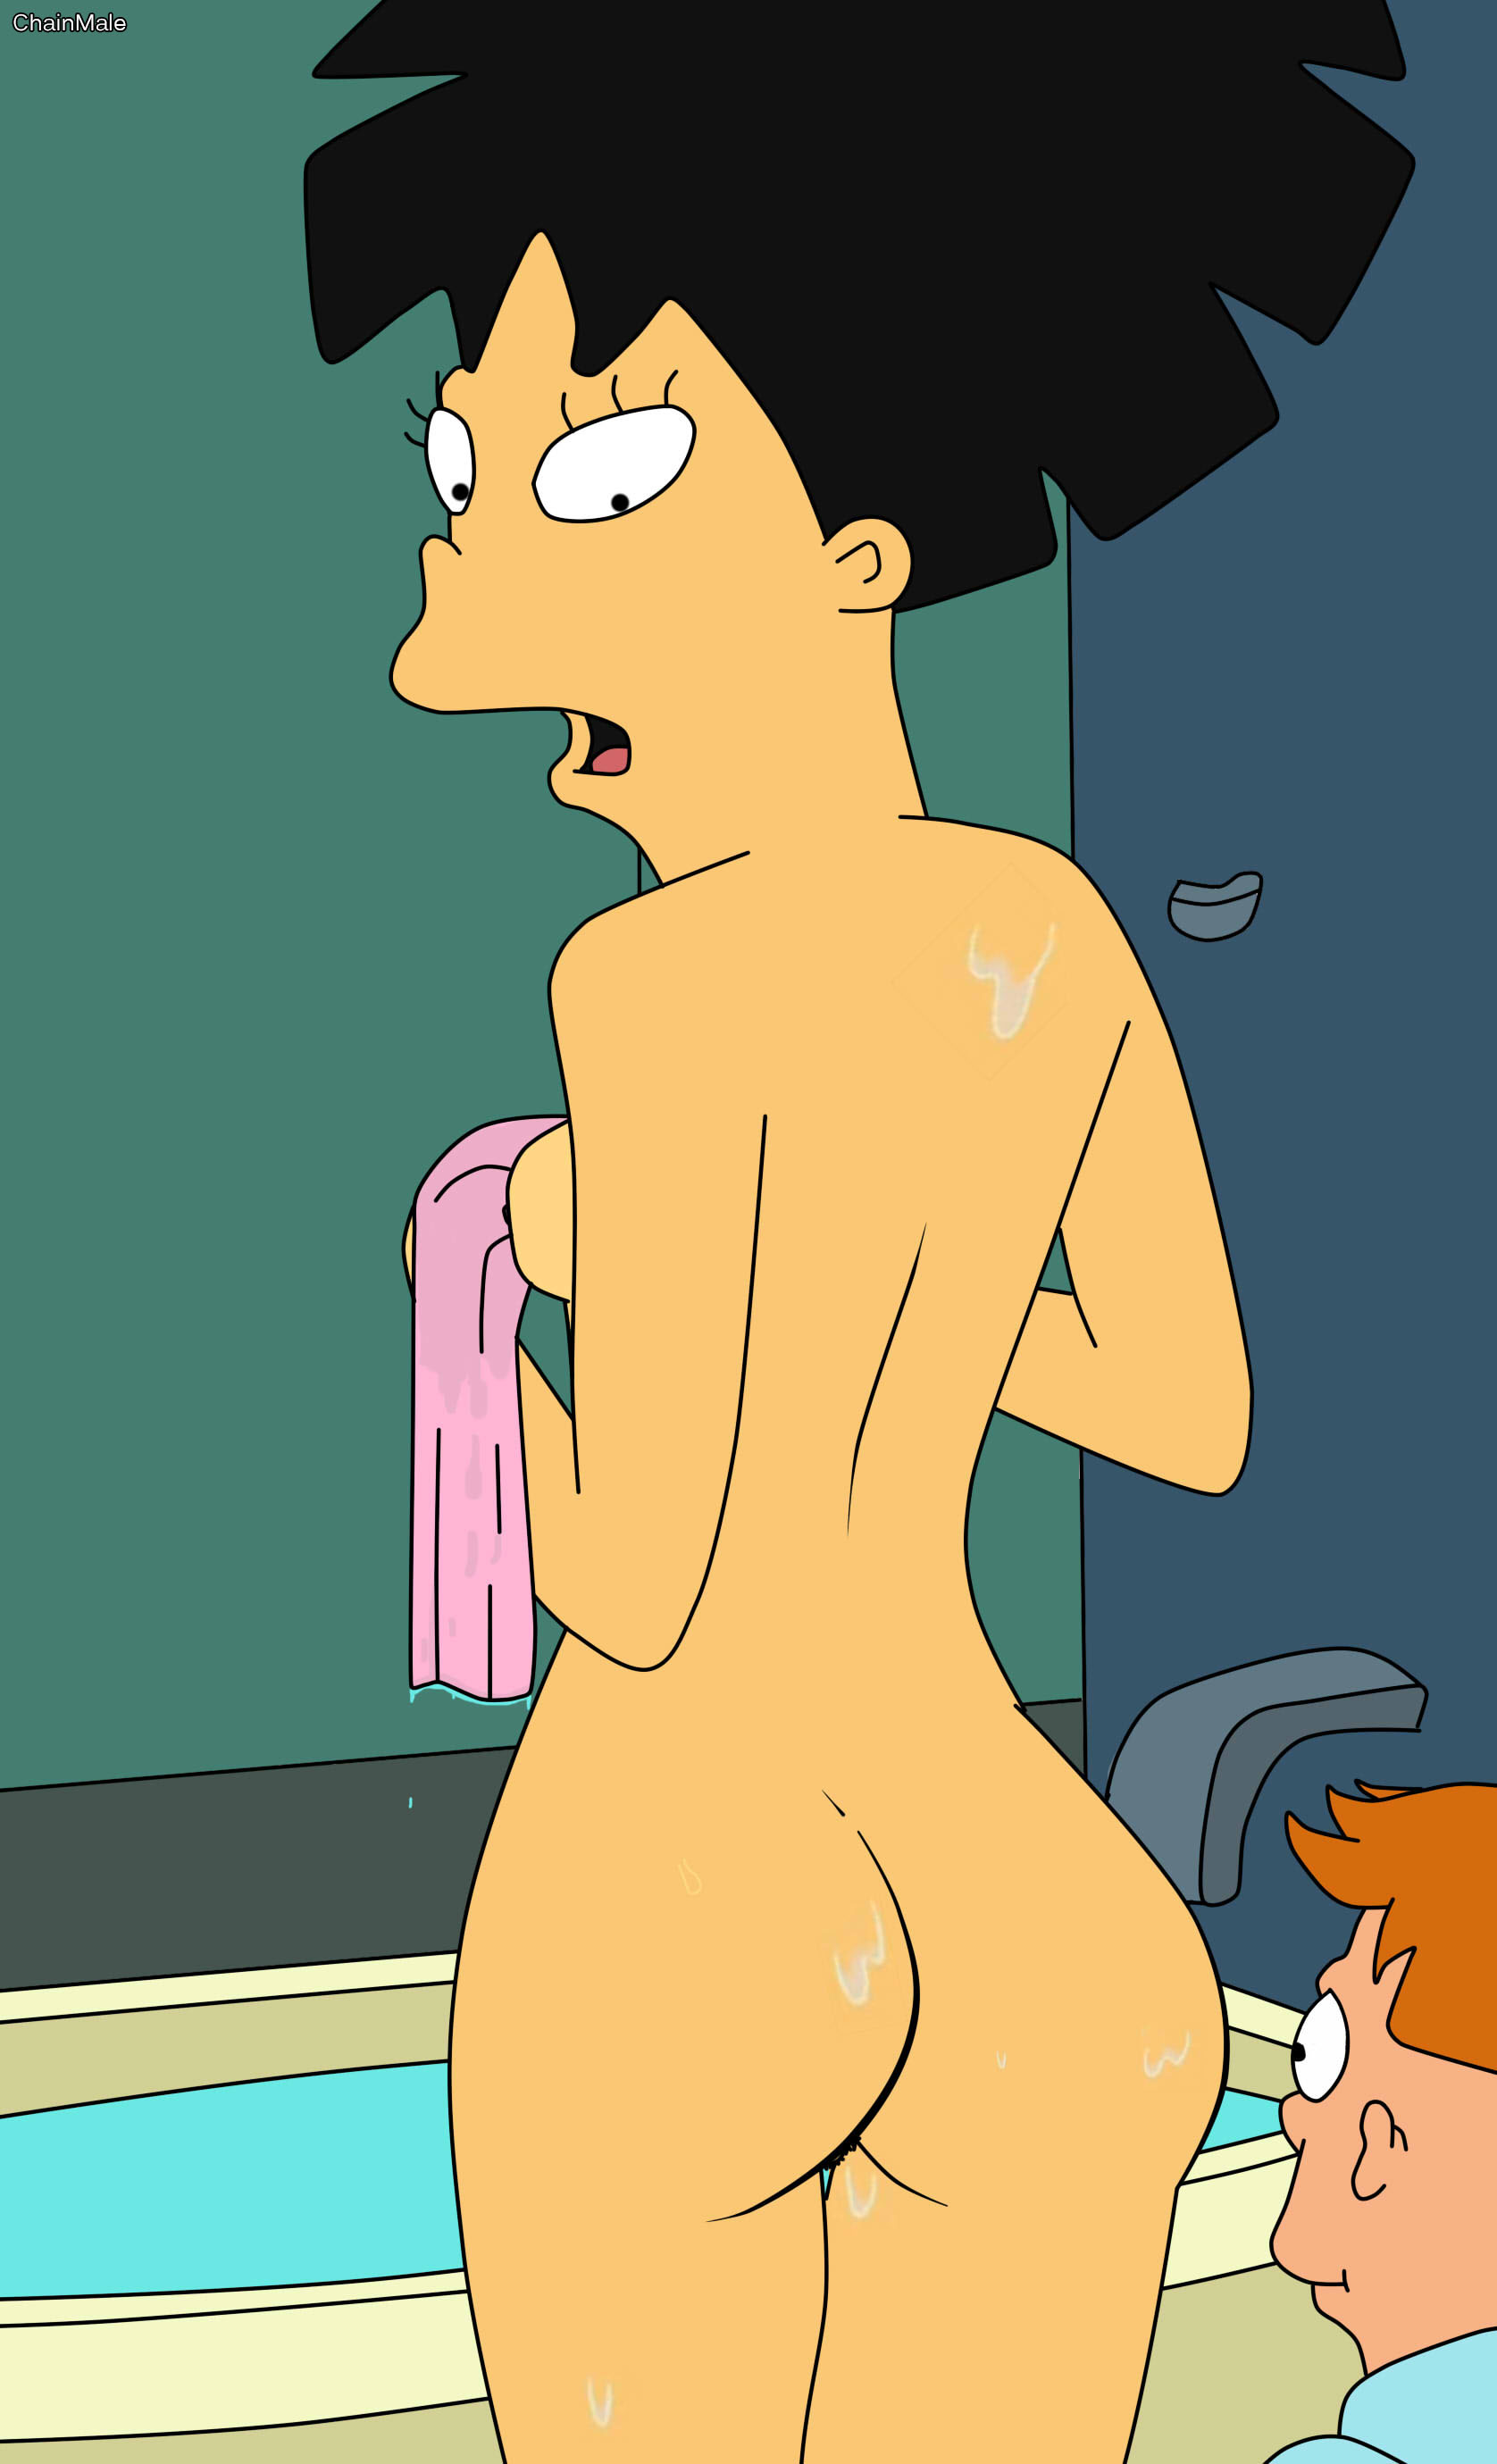 Amusing Leela amy futurama naked yes good